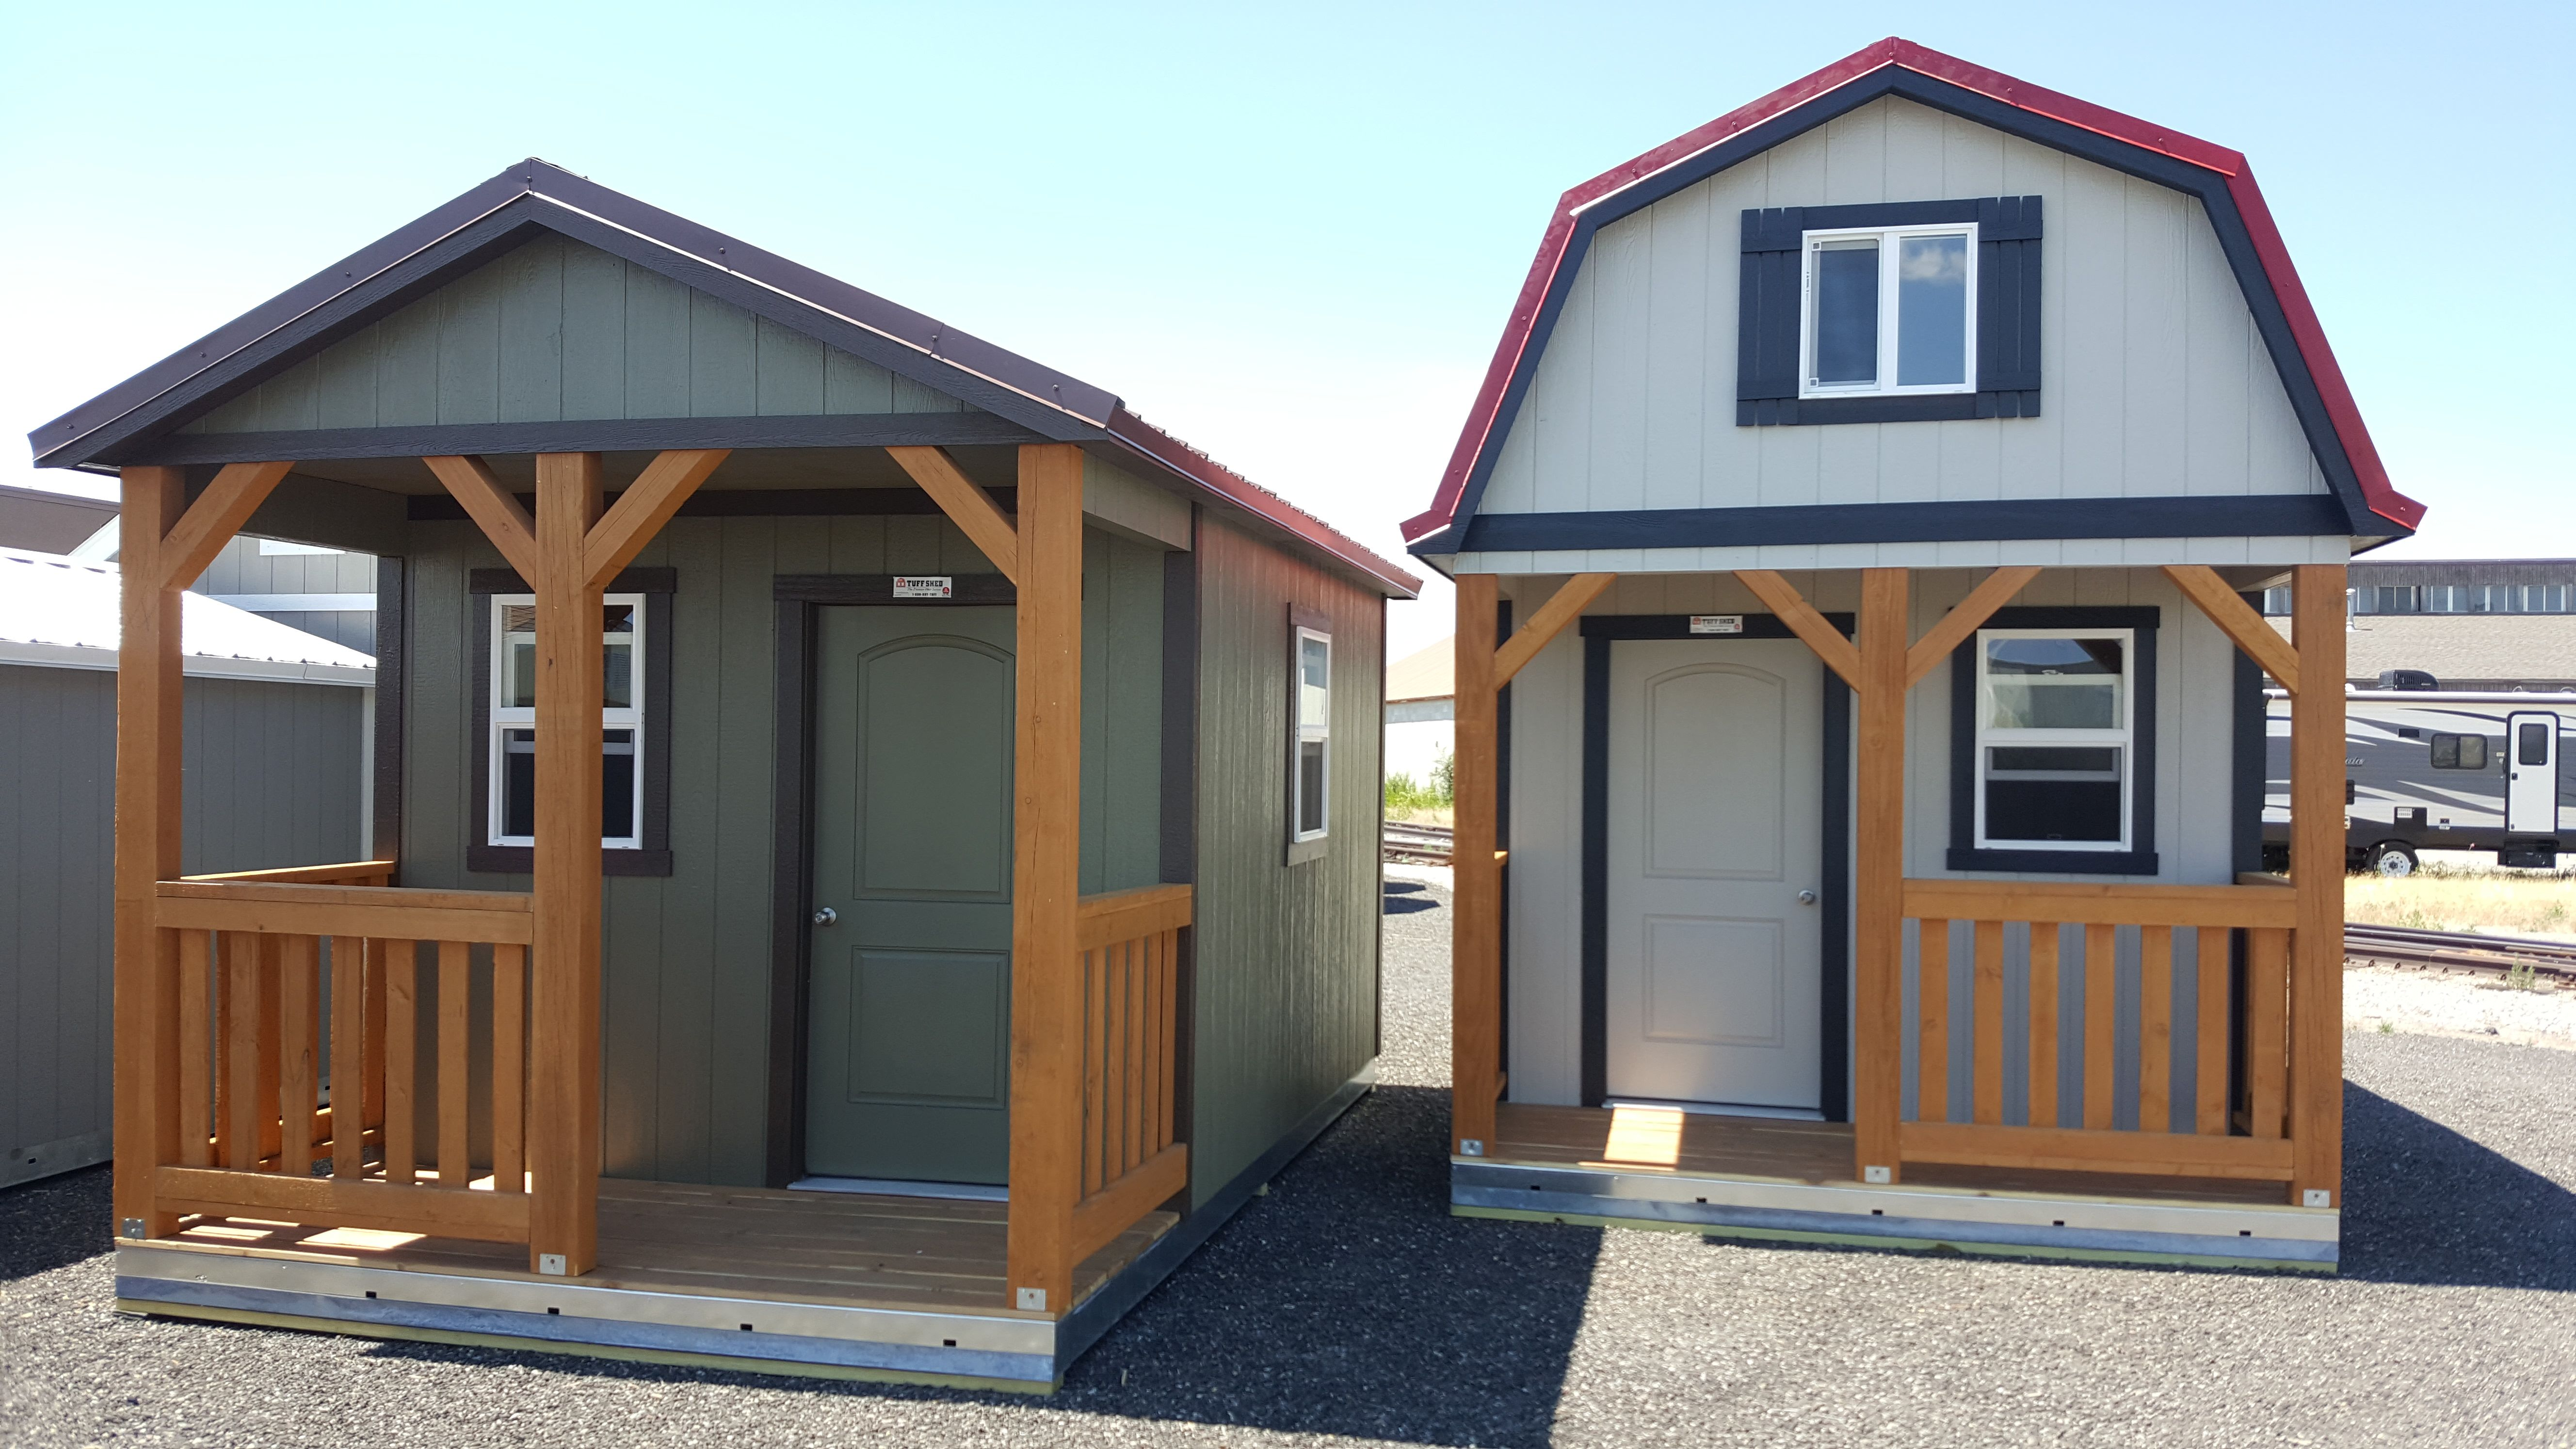 Storage Shed Construction Shed To Tiny House Cabin House Plans